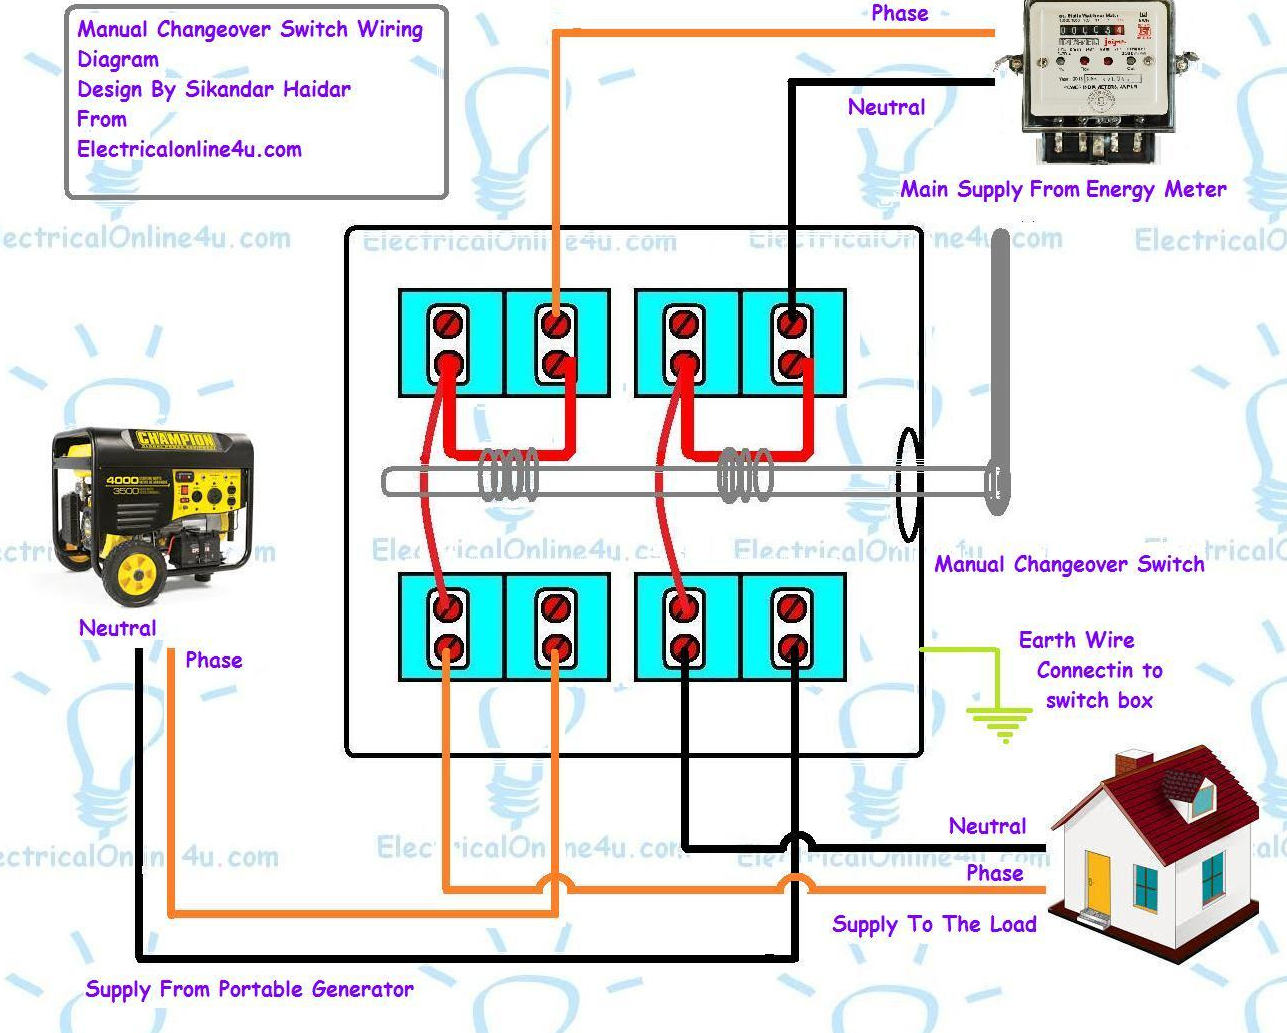 Manual Changeover Switch Wiring Diagram For Portable Generator Light Help